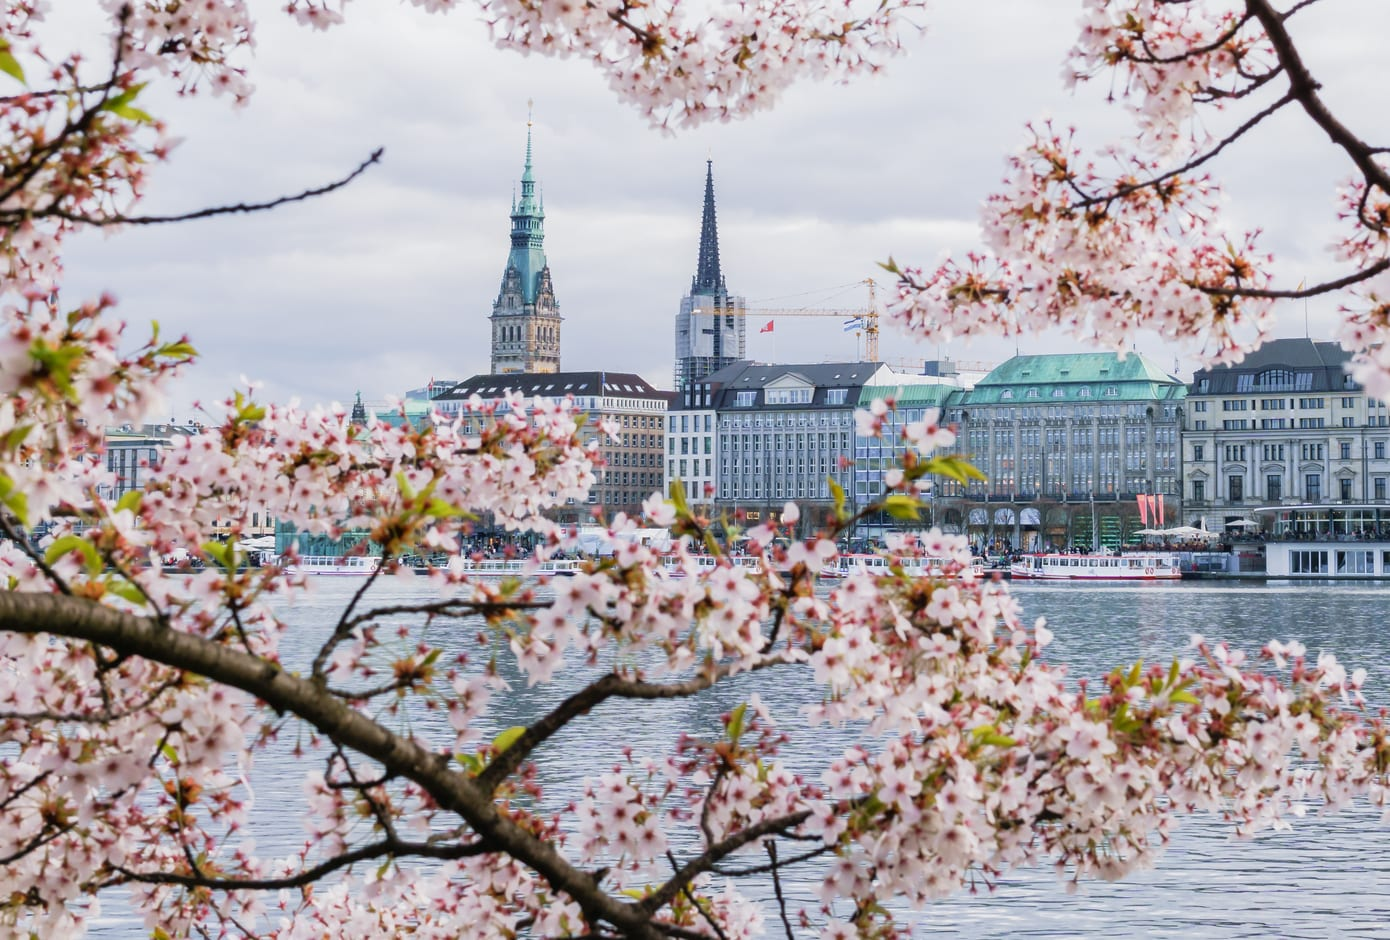 View of Hamburg townhall - Rathaus, Alster river, and a cherry blossom tree at spring day.